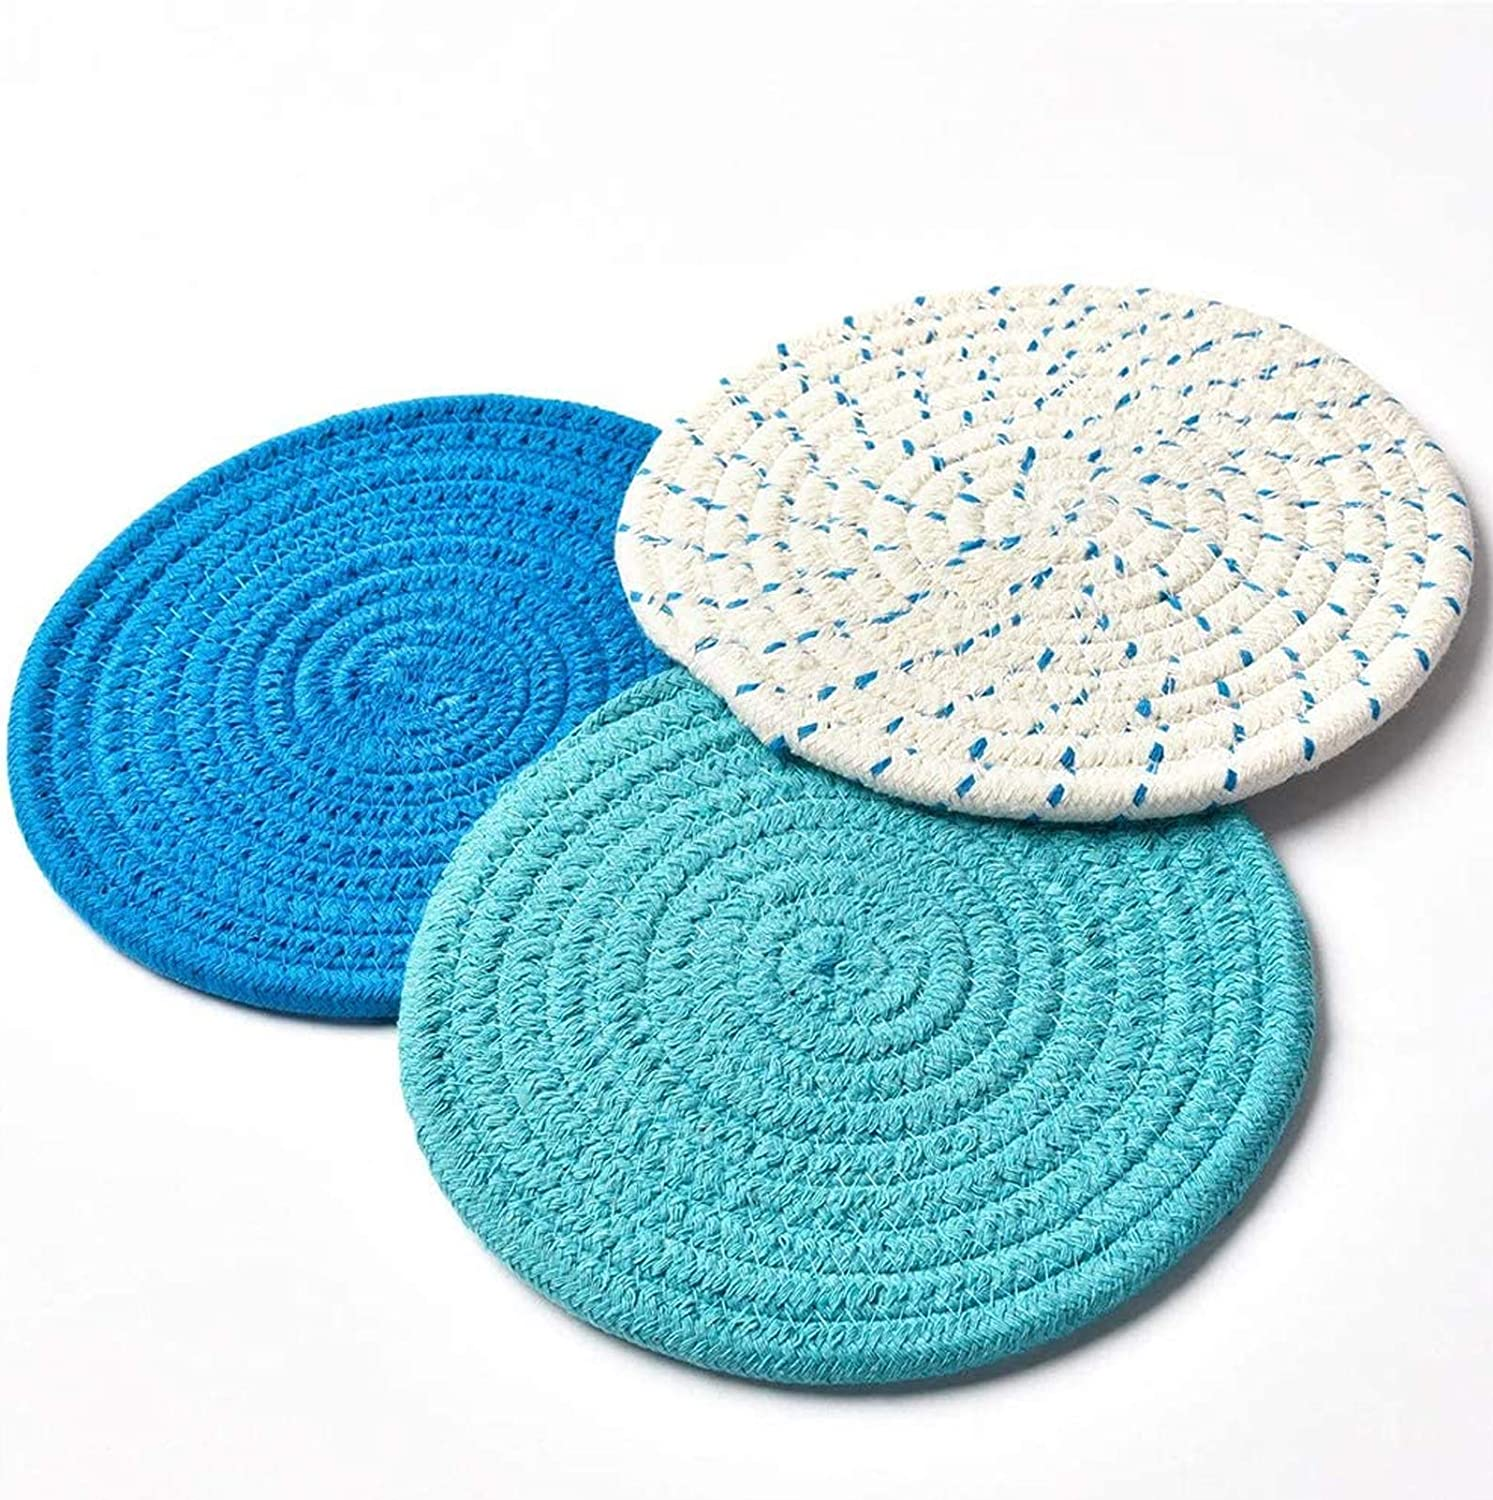 Cosywell Kitchen Pot Holders Set (Set of 3) Hot Pads Cotton Trivet Mats for Hot Pots Pans Holders Spoon Rest for Cooking